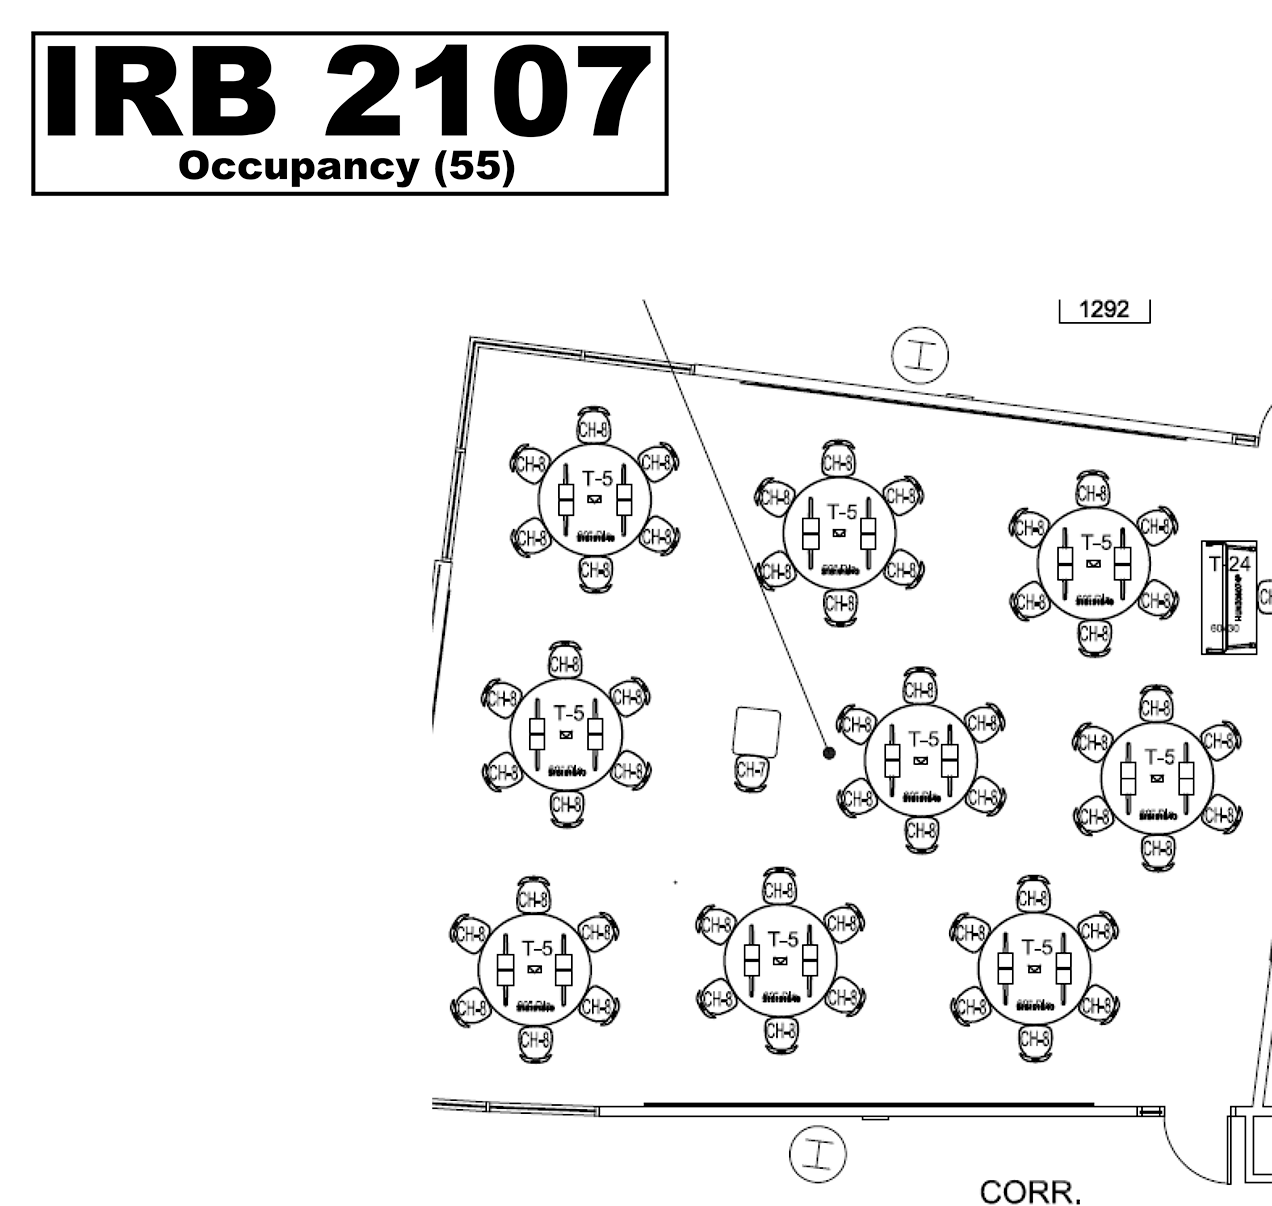 IRB2107 floorplan